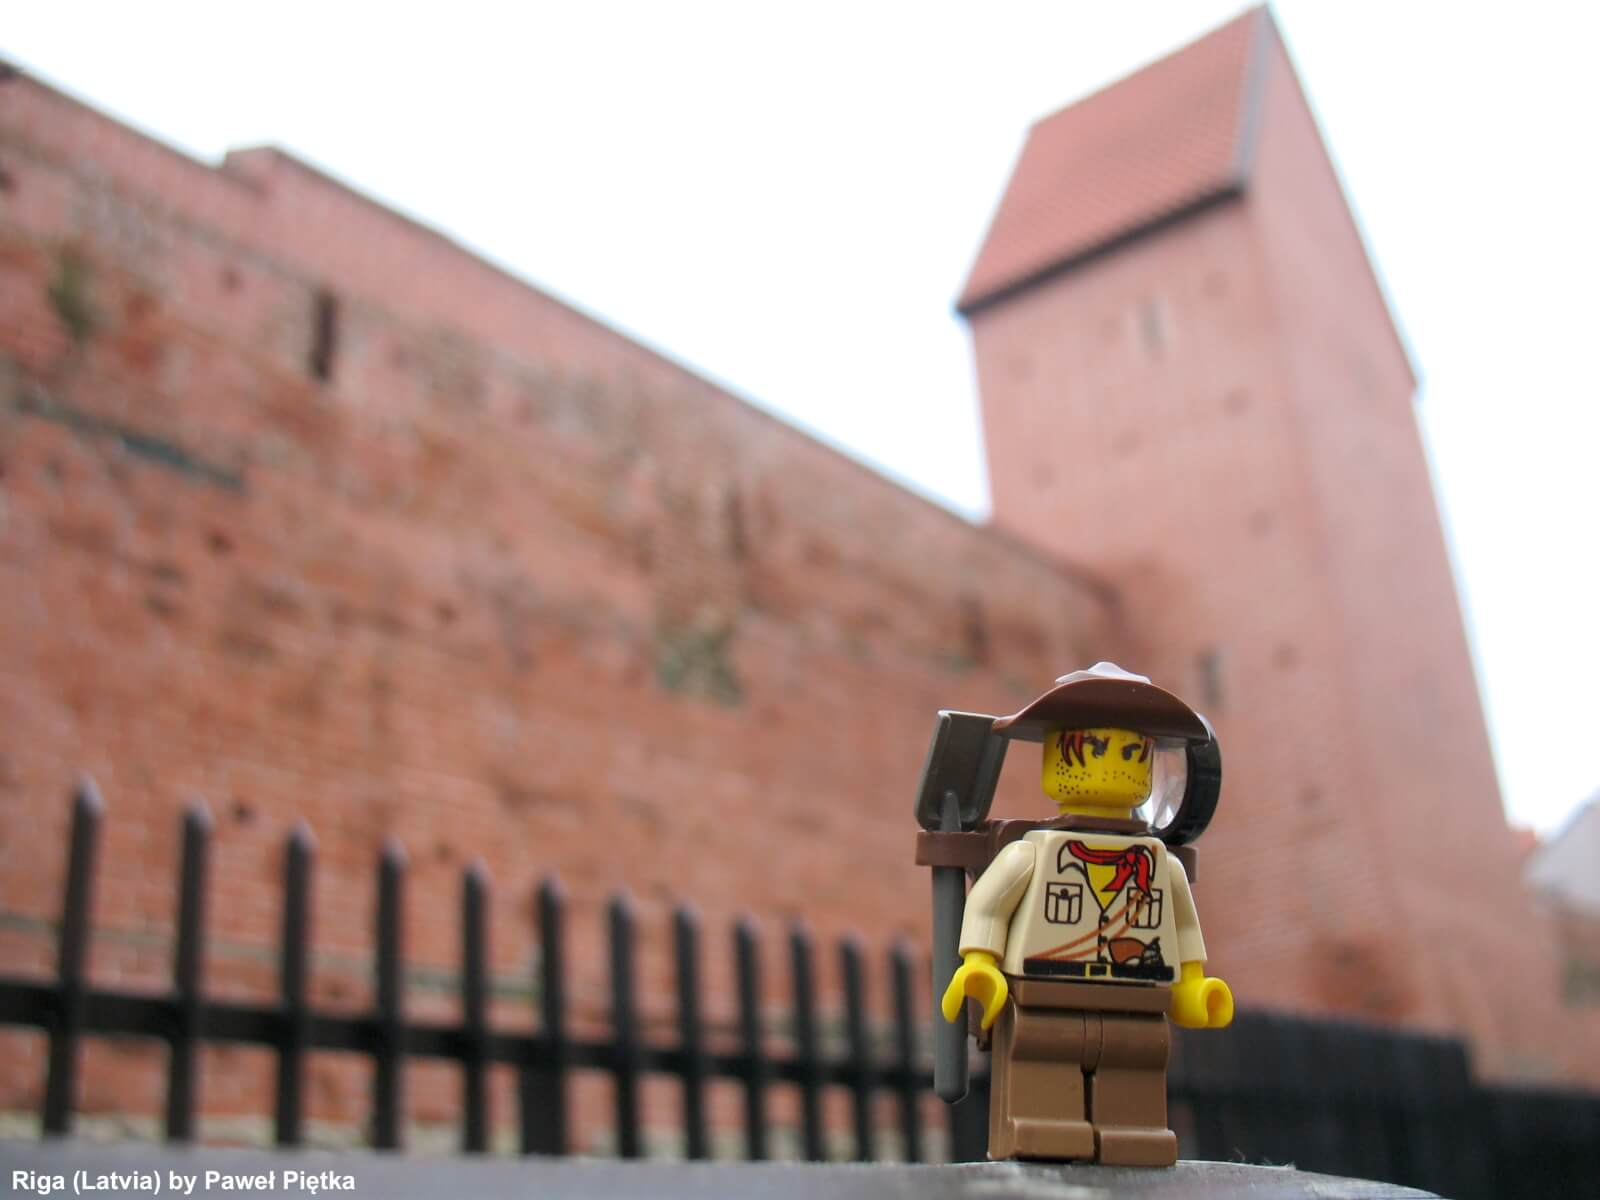 Riga (Latvia) - Old City Walls